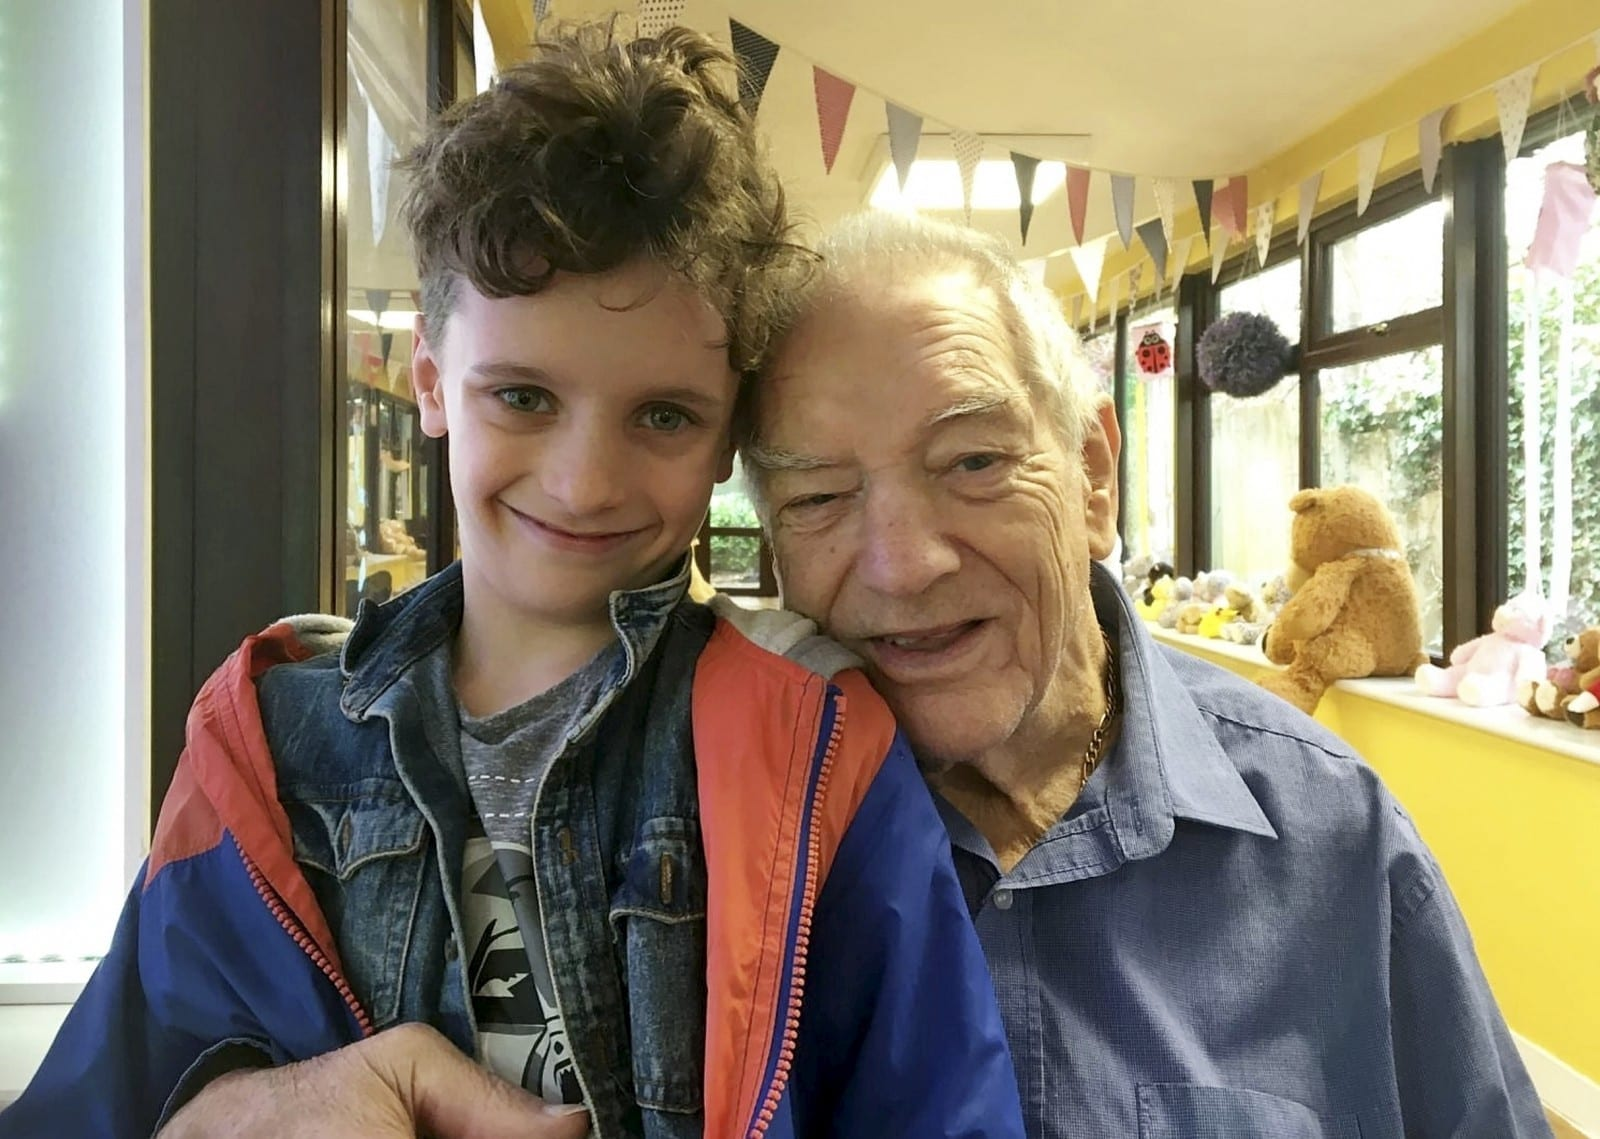 'I Want To Give My Grandad The Trip Of A Lifetime' - Hardy Schoolboy Has Worn SHORTS Every Day For A YEAR - To Raise Enough Money To Send His Granddad To The Seaside